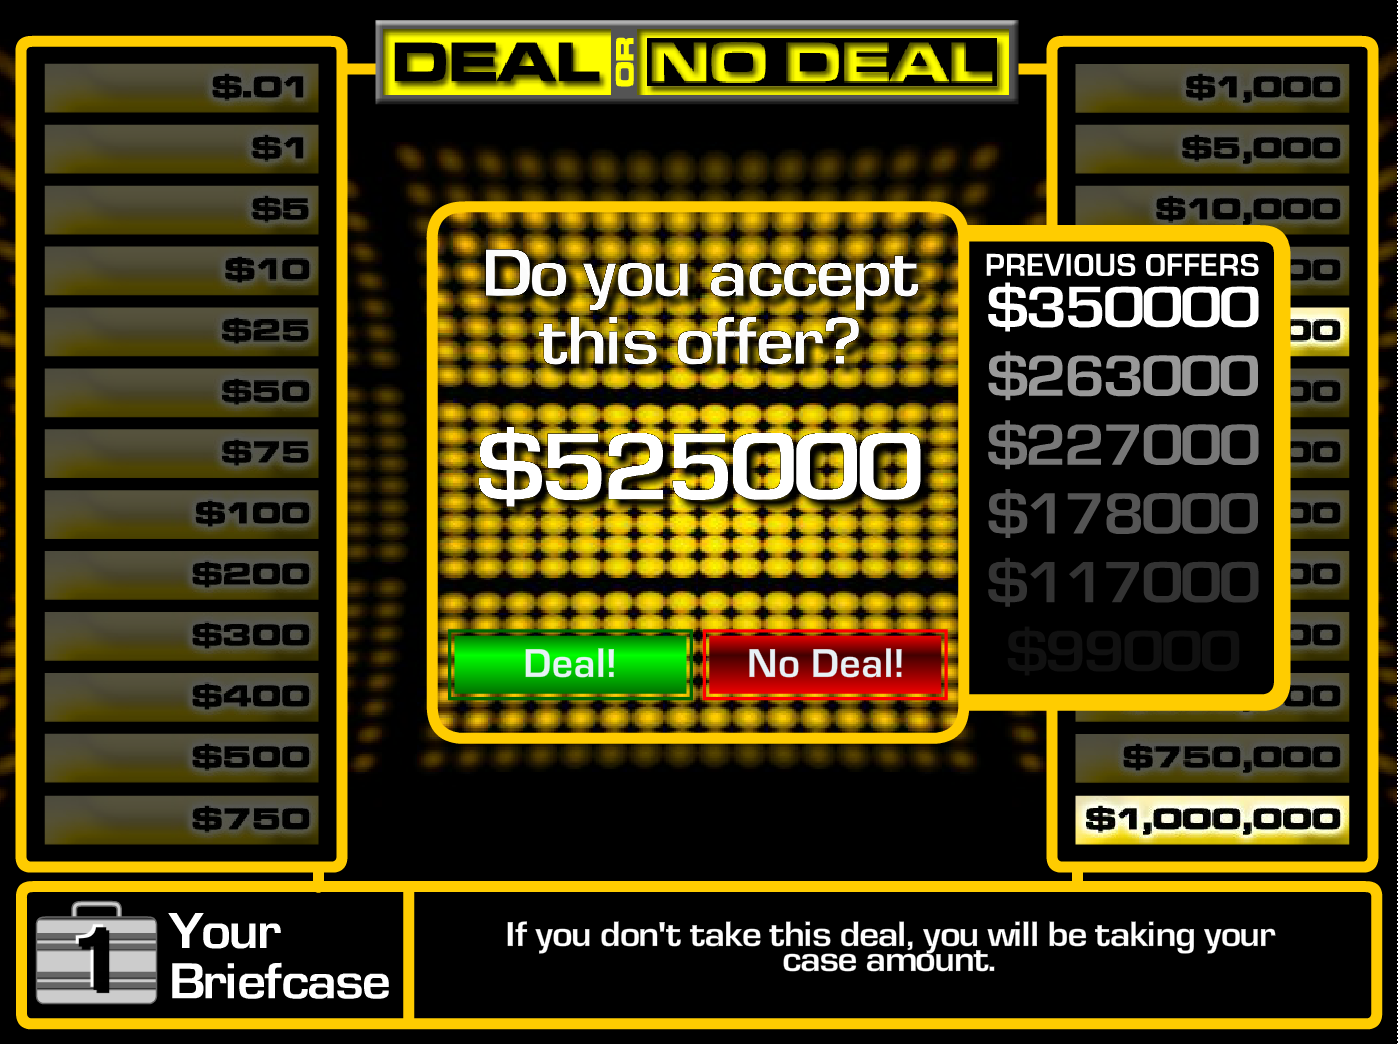 Image Deal - No deal